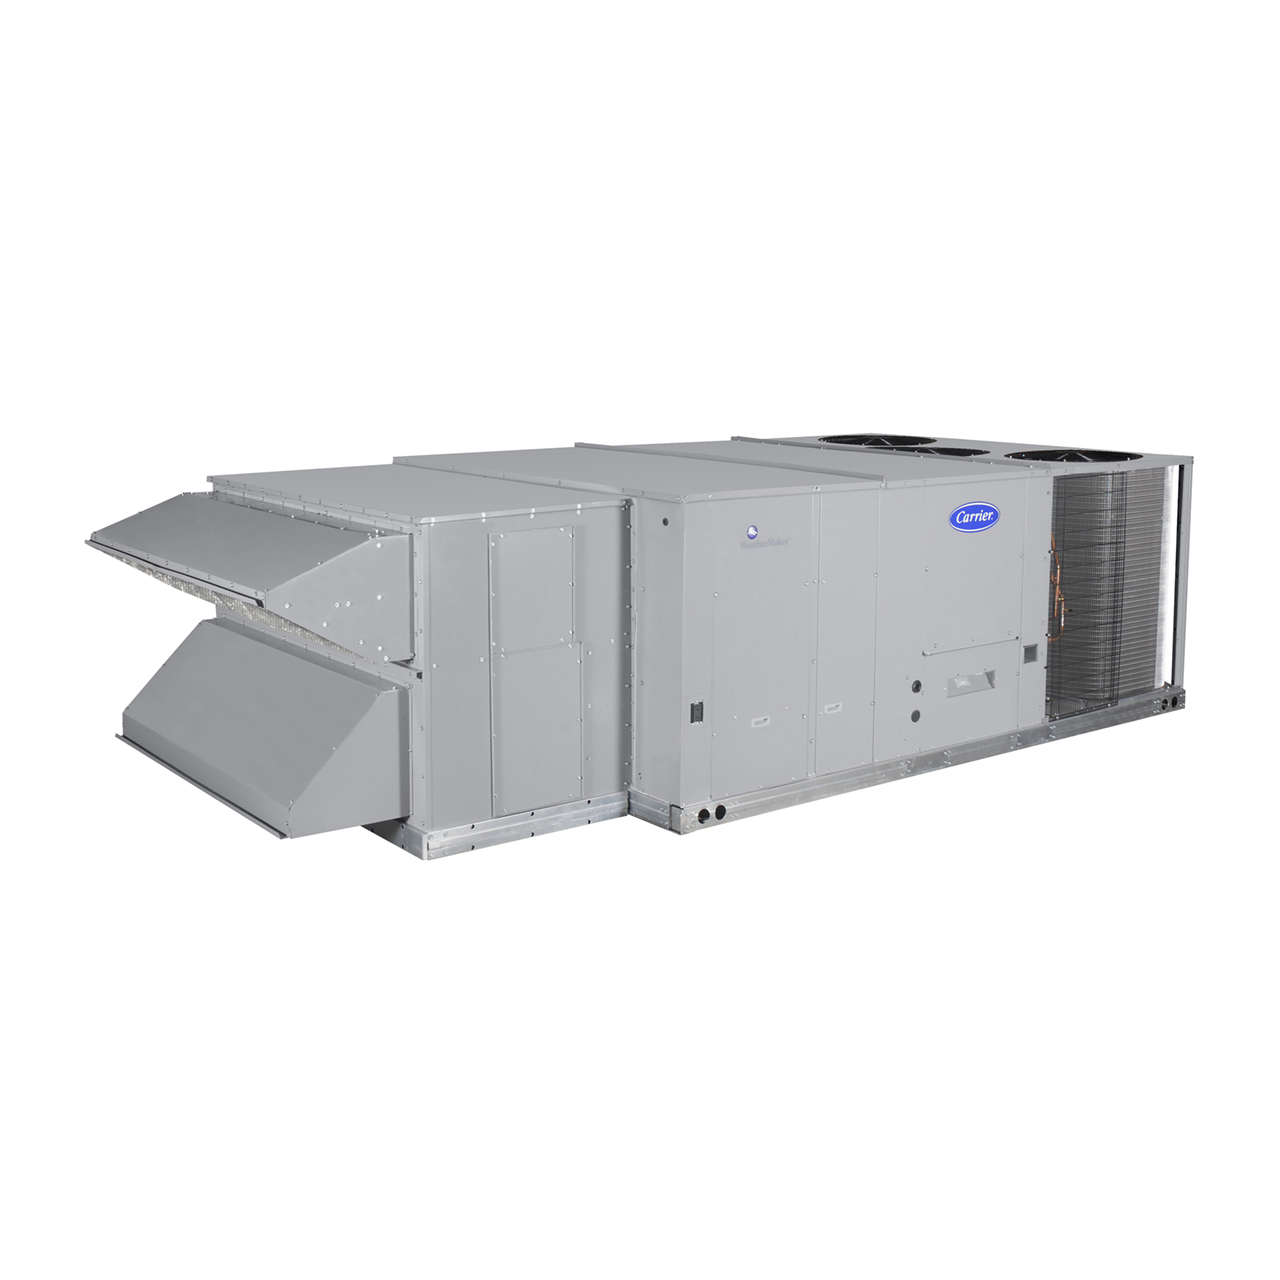 "50HC WeatherMaster® rooftop unit were designed by customers for customers. With a gauge plug, centralized control center, plug & play accessory board, ""no-strip screw"" collars, and handled access panels, we've made the unit easy to install, easy to maintain, and easy to use."